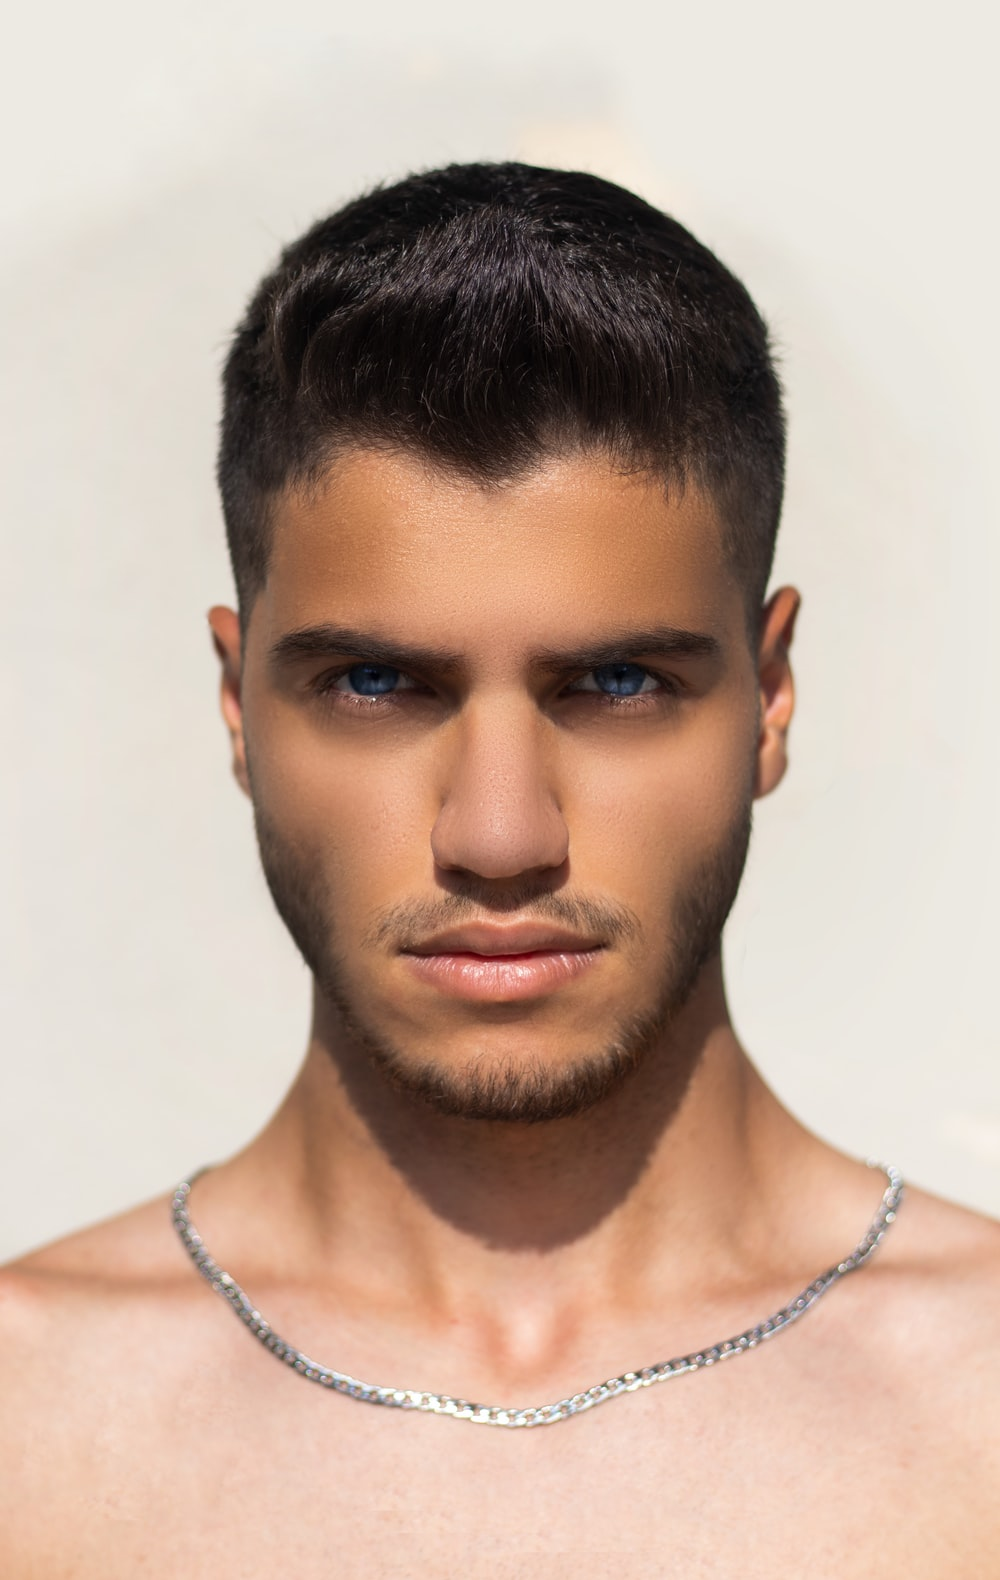 man in silver chain necklace